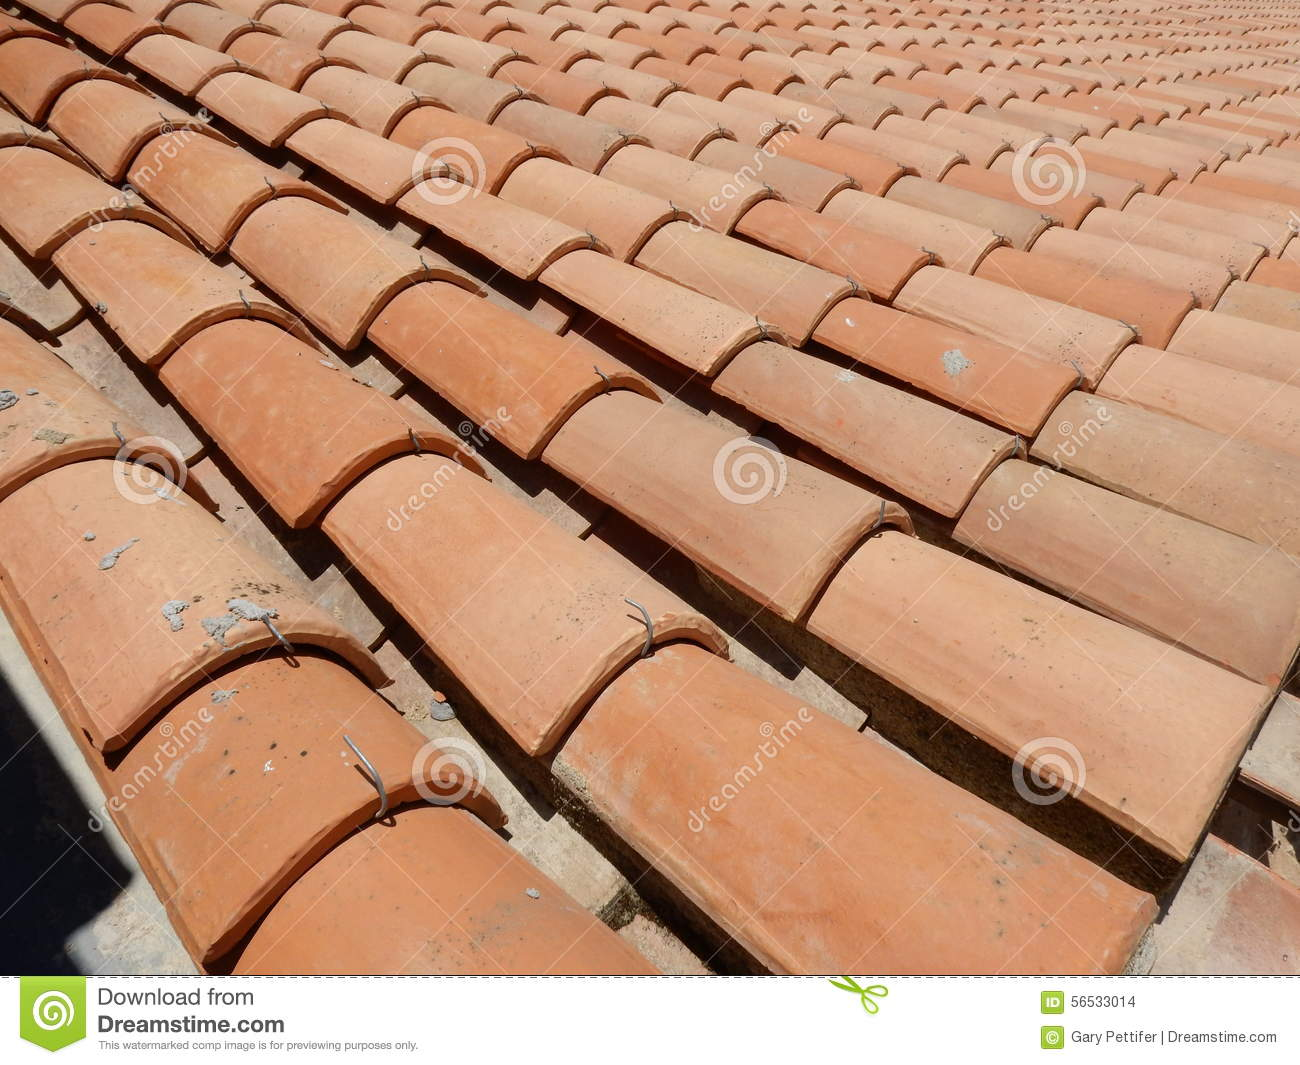 Italian Red Roof Tiles Royalty Free Stock Photography